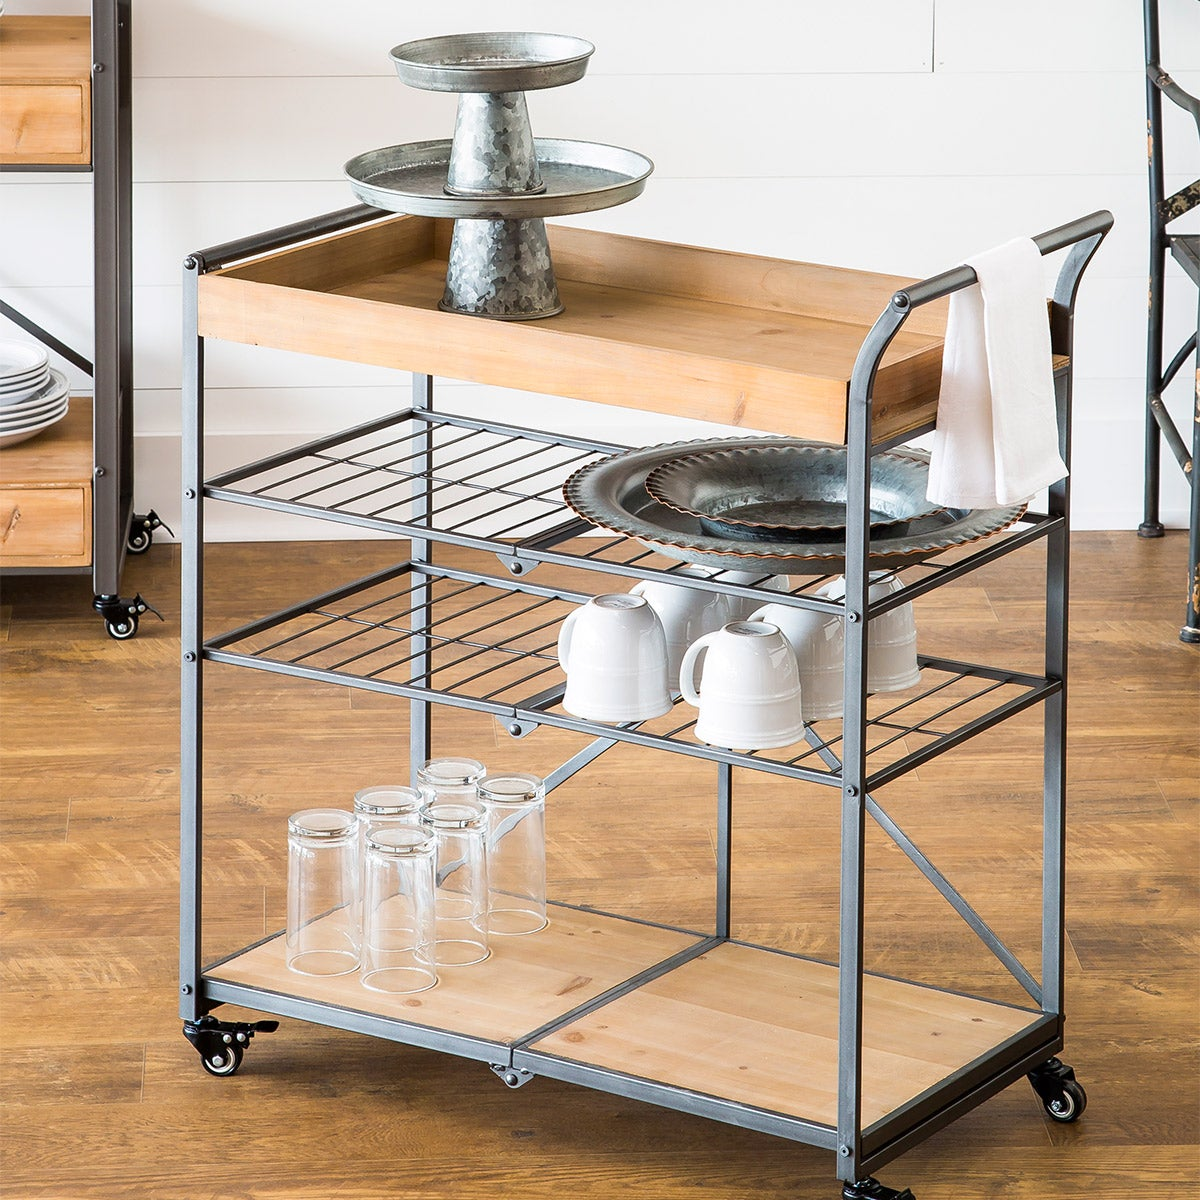 Folding Metal and Wood Serving Cart with Wheels